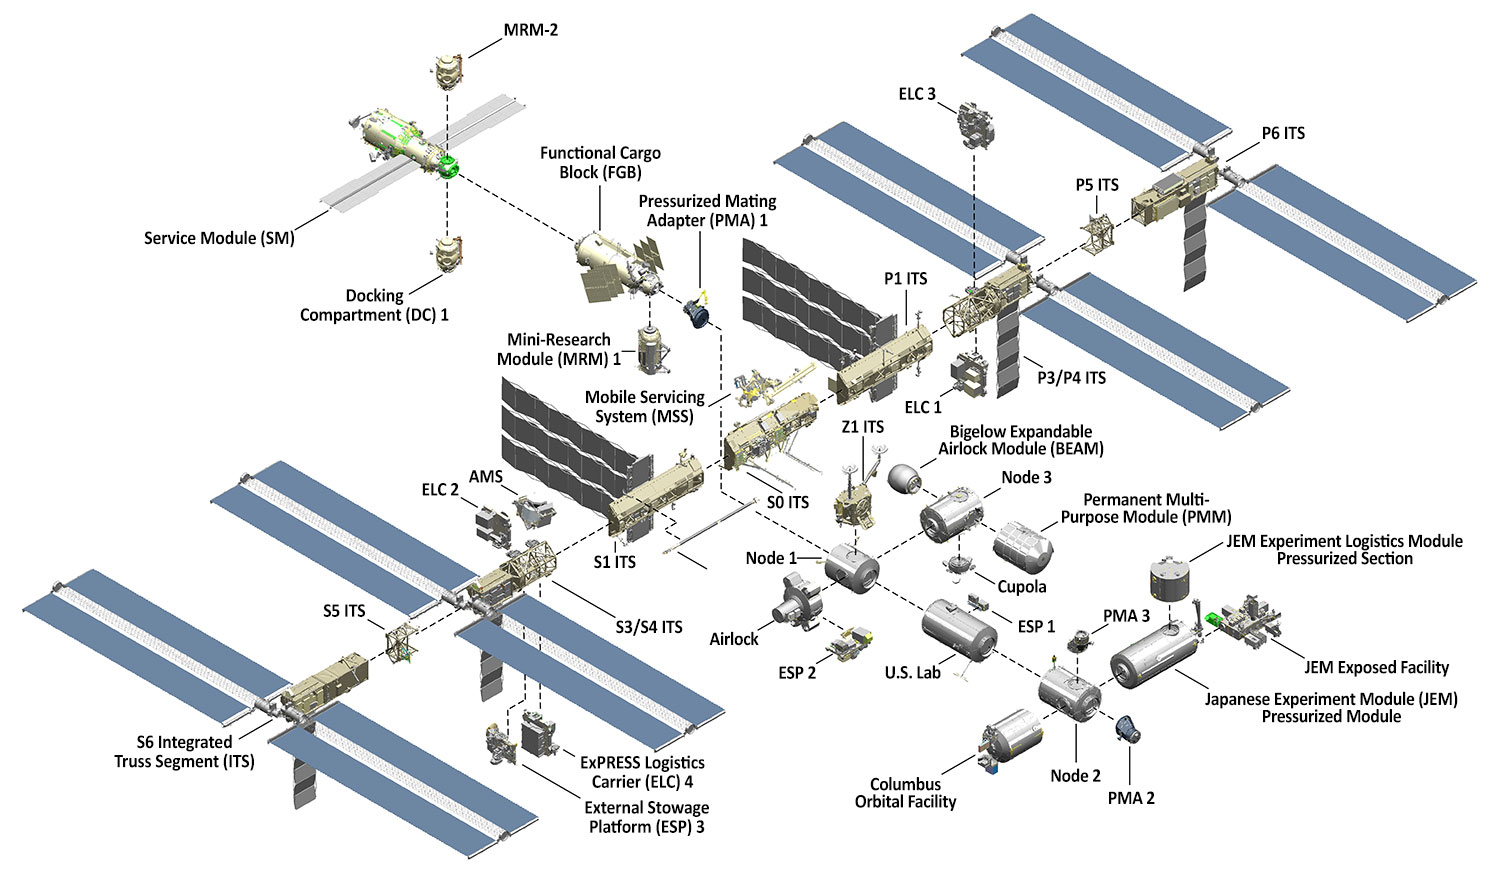 international space station facts and figures nasa Rocket Launch Timeline model rocket launch diagram